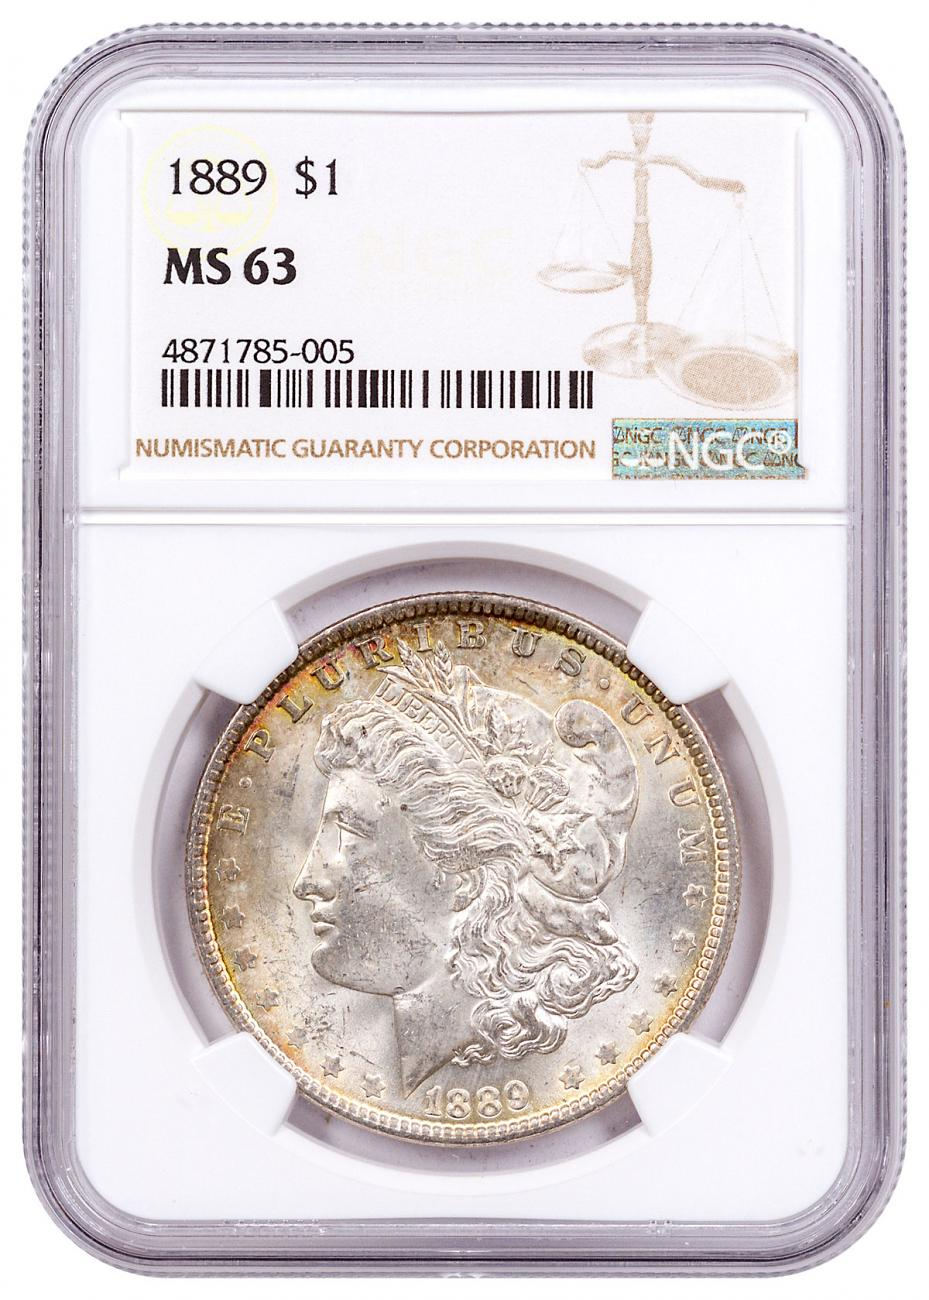 1889 Morgan Silver Dollar Toned NGC MS63 CPCR 5005